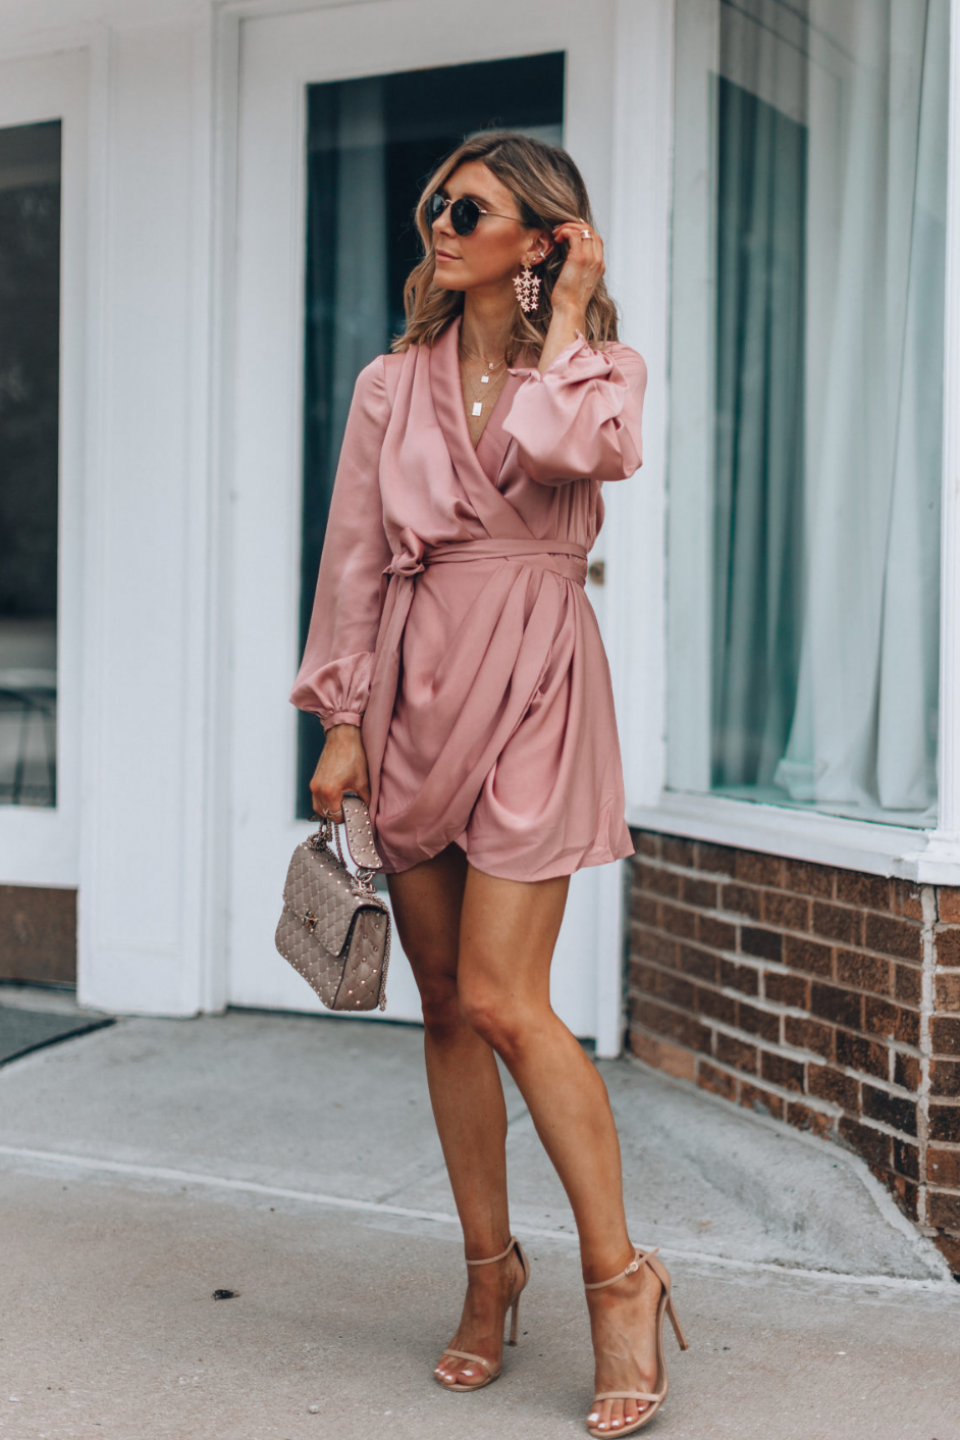 Fall Wedding Guest Dresses For Every Budget Wedding Guest Dress Long Simple Wedding Guest Maxi Dress With Sleeves Fall Wedding Guest Dress Guest Dresses [ 4048 x 2640 Pixel ]